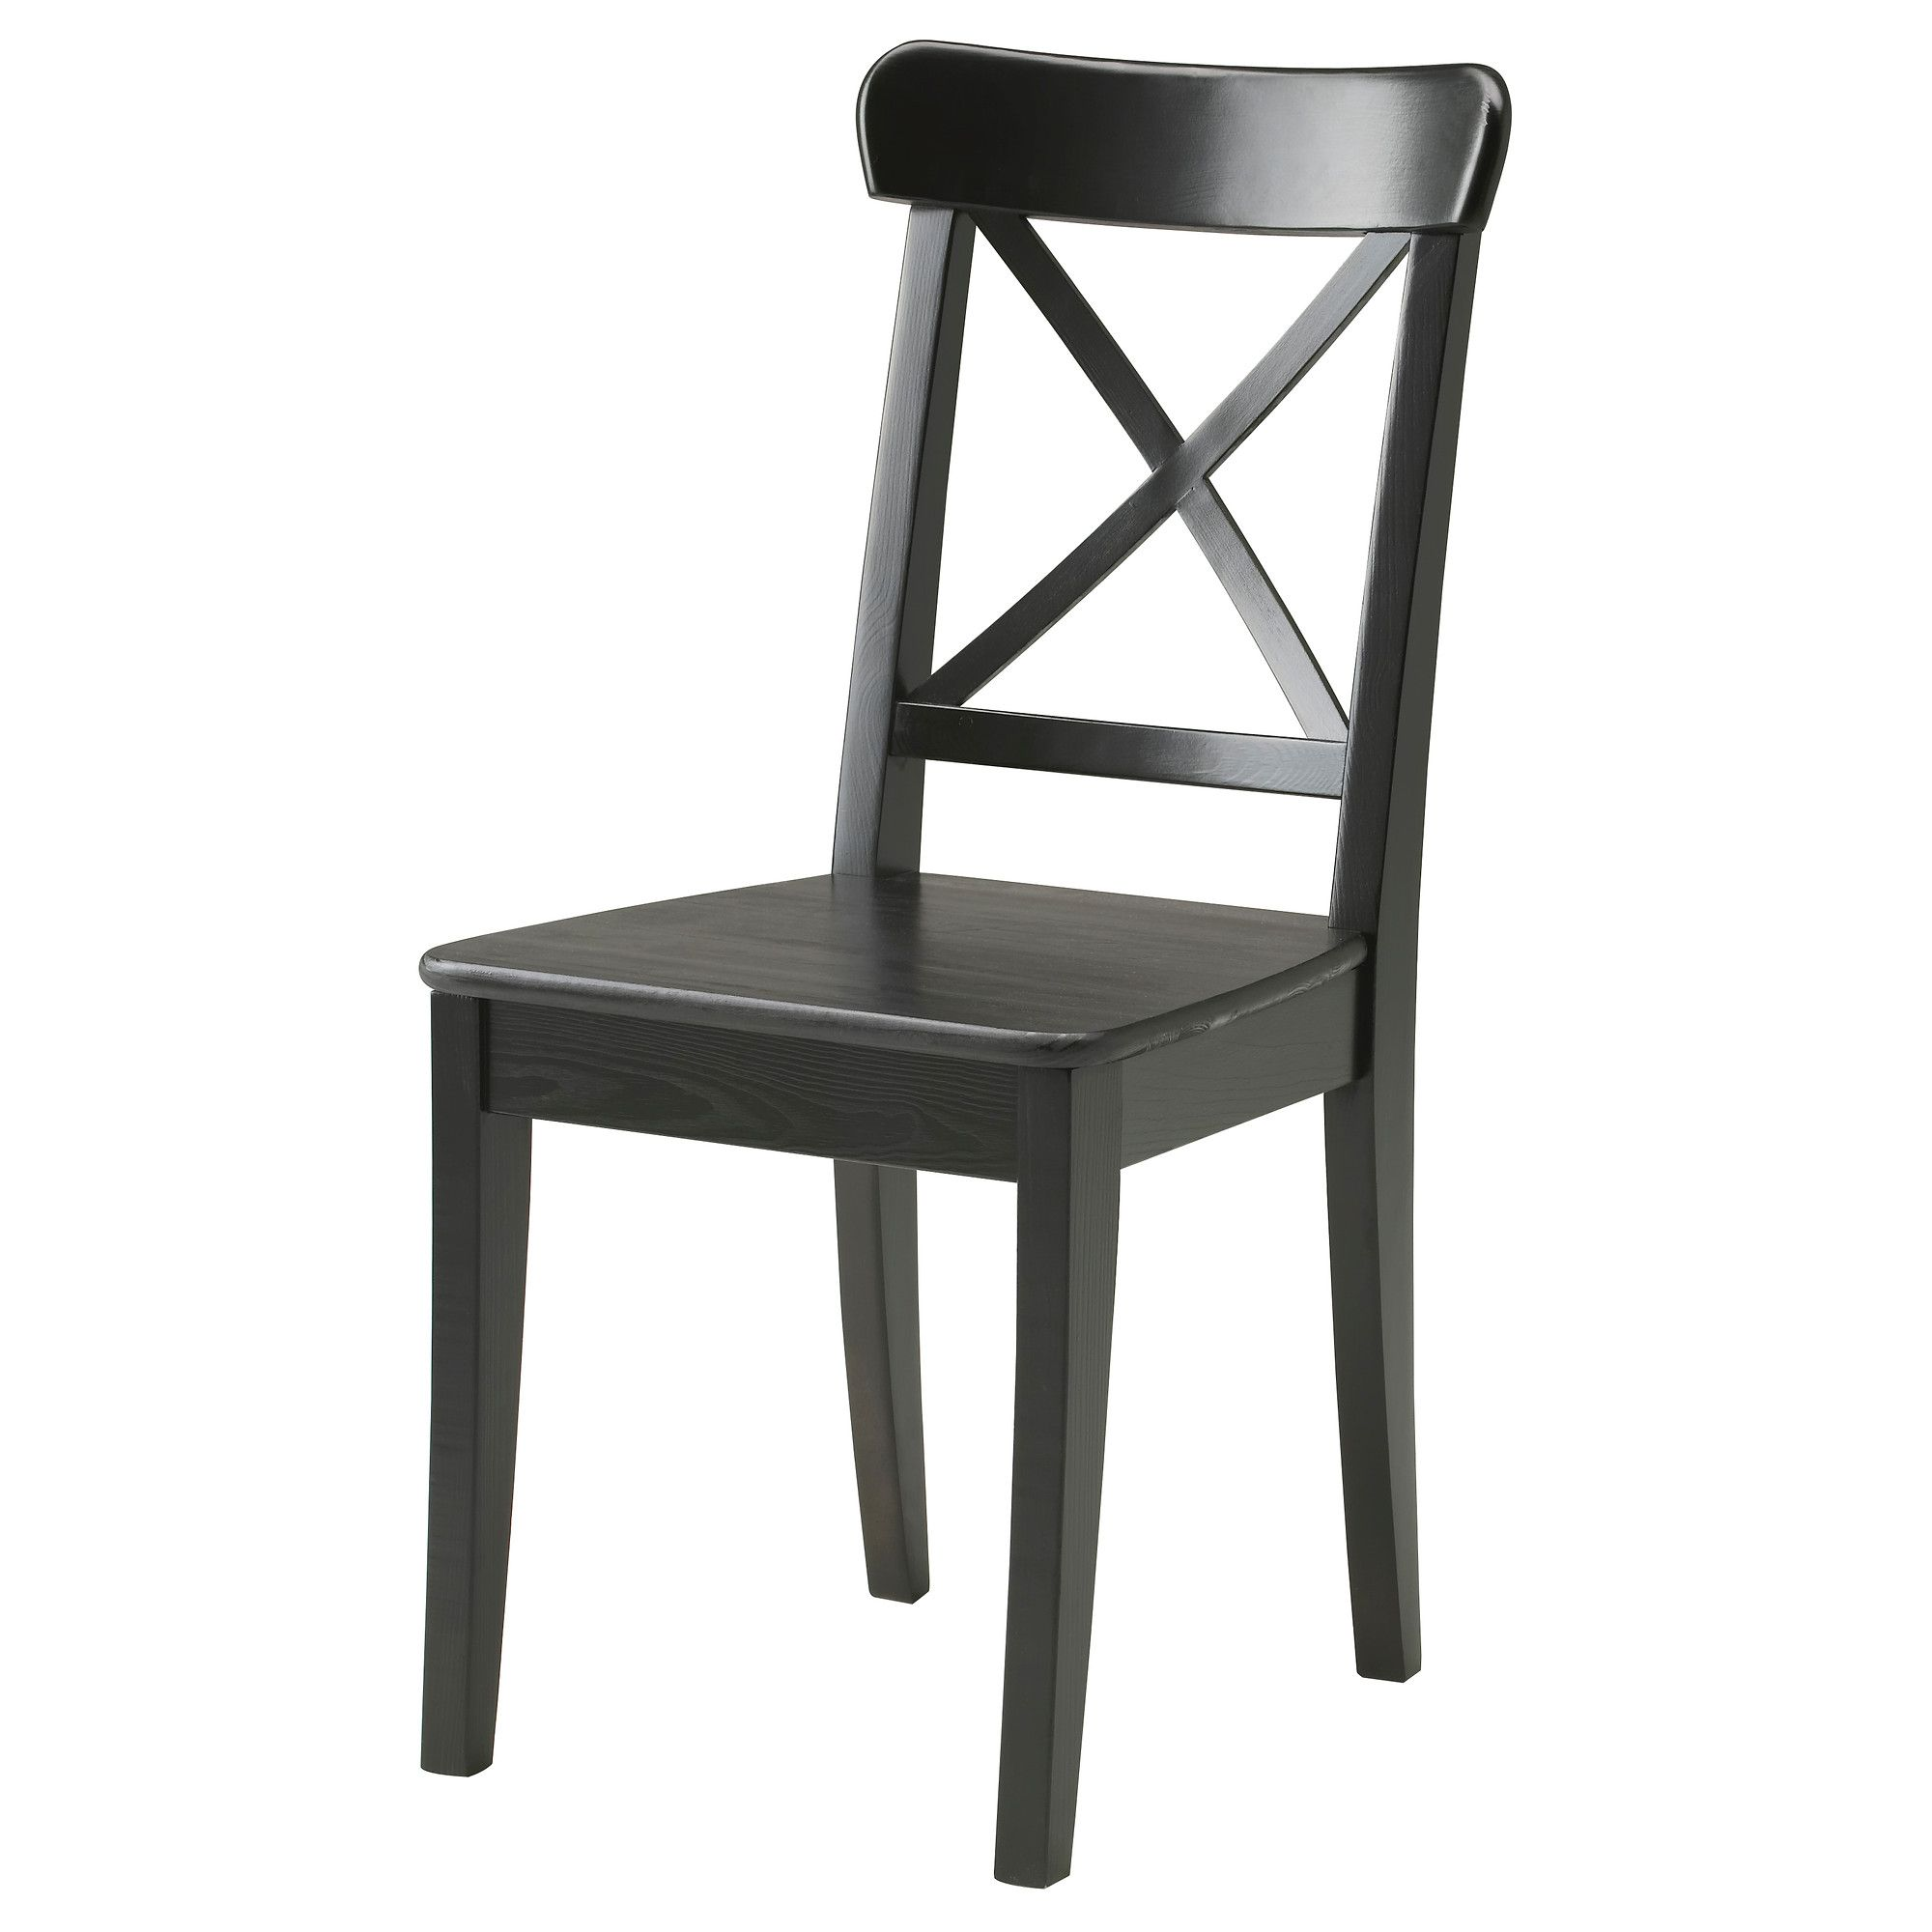 Ingolf Chair White 49 00 The Price Reflects Selected